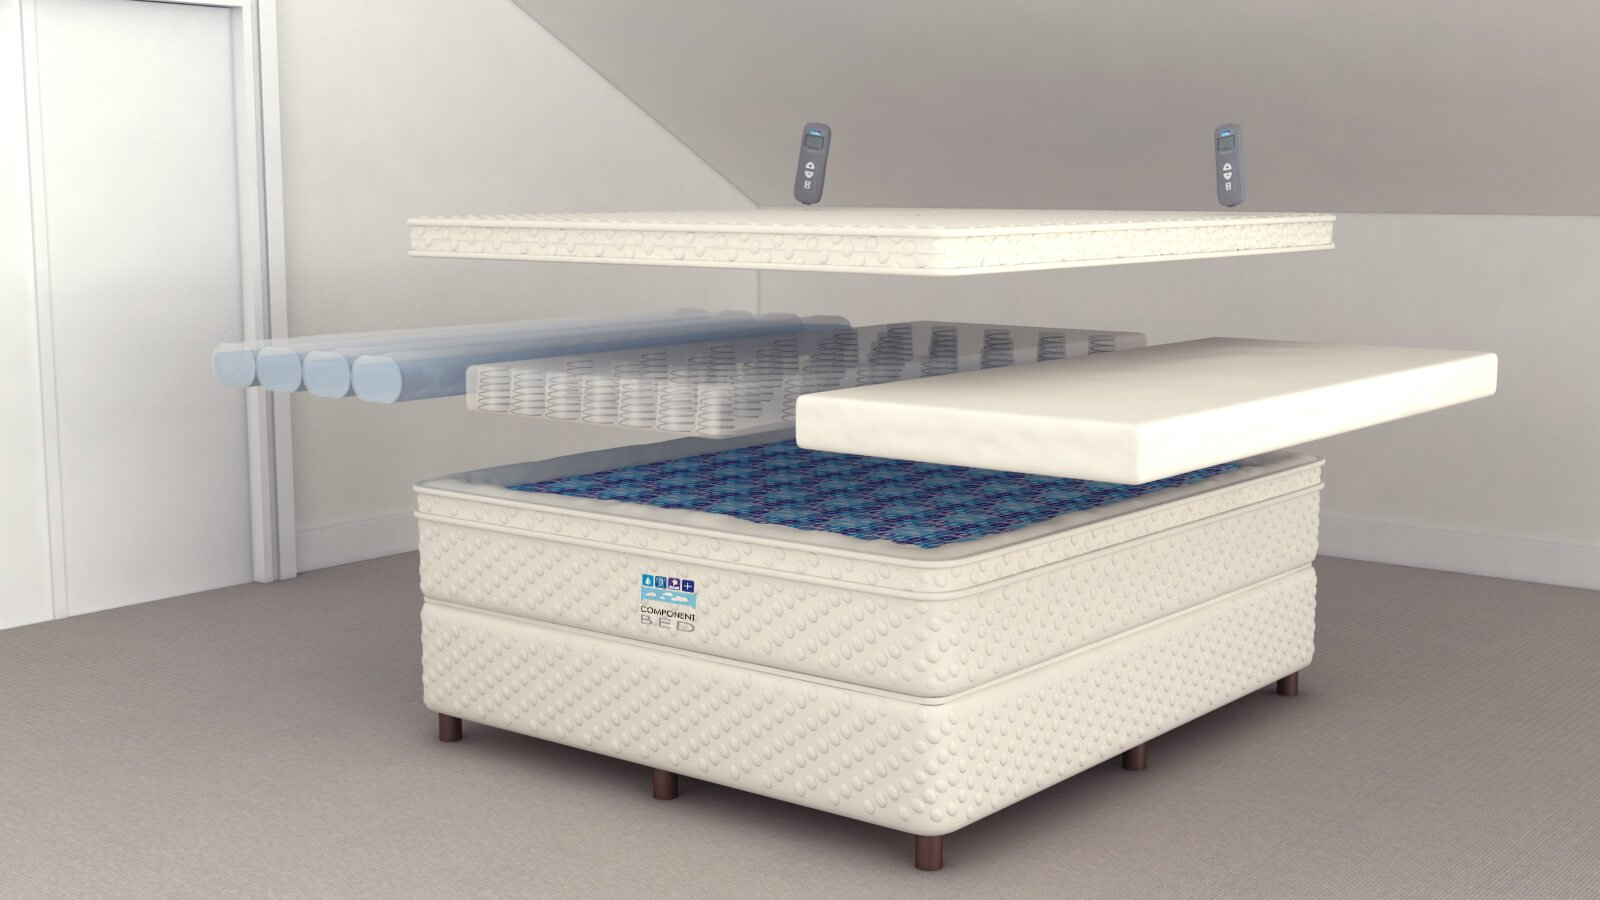 Top 10 Best Mattress Under 100 Dollars     Community Counts Best Cheap queen Mattress Under 100 Dollars